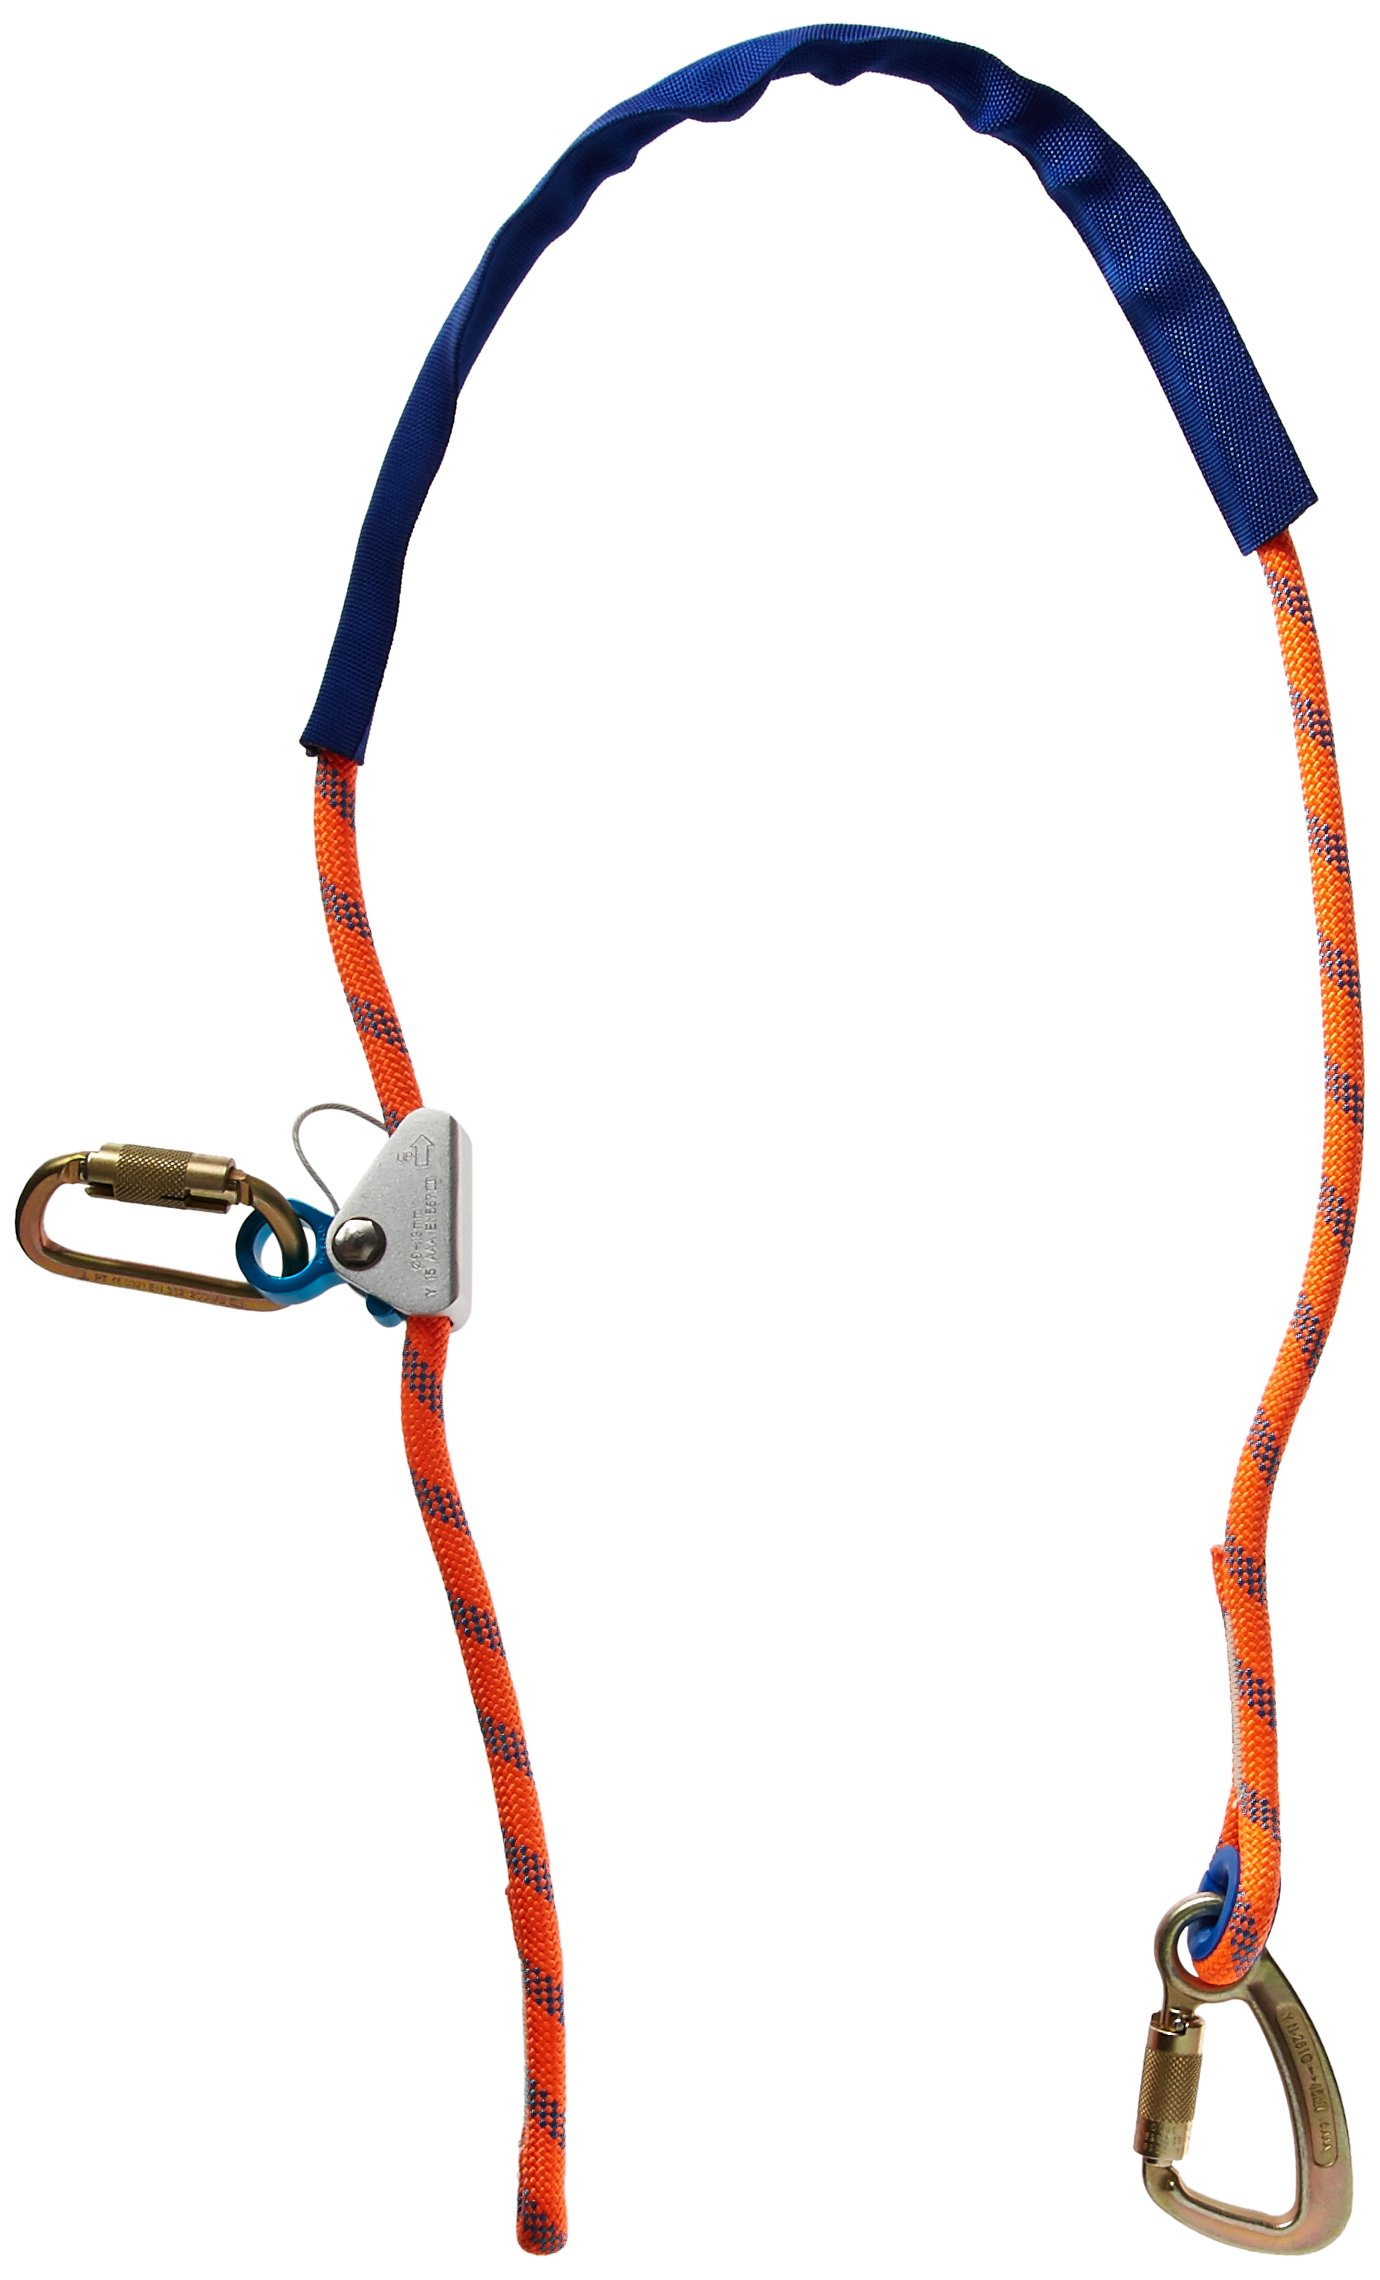 Elk River 34496 1/2'' by 6' Quick Adjustable Rope Positioning Lanyard